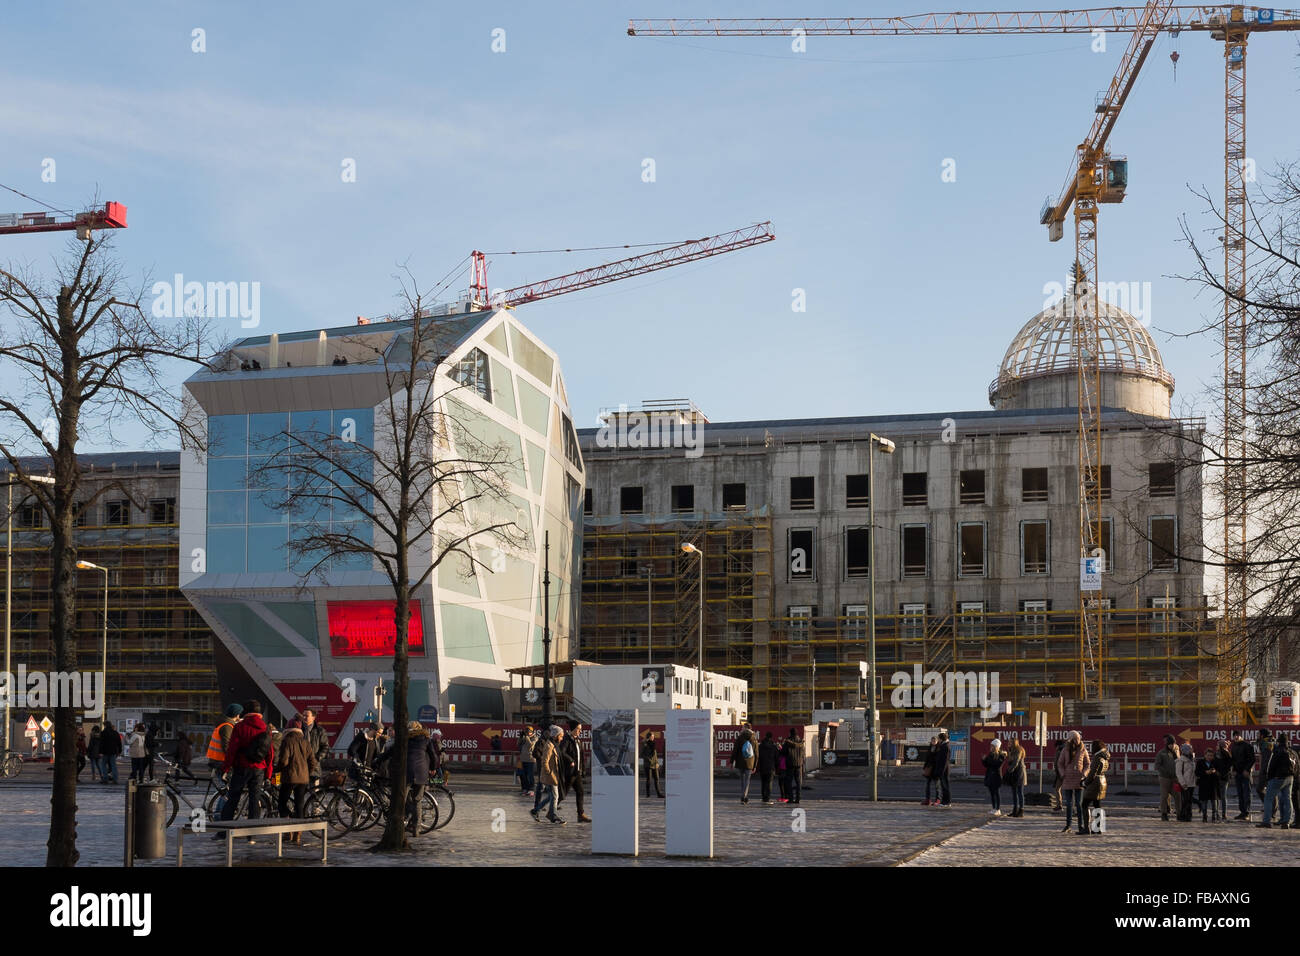 BERLIN - JANUARY 09: Reconstruction of the Berlin City Palace or 'Berliner Stadtschloss' in Berlin on January - Stock Image